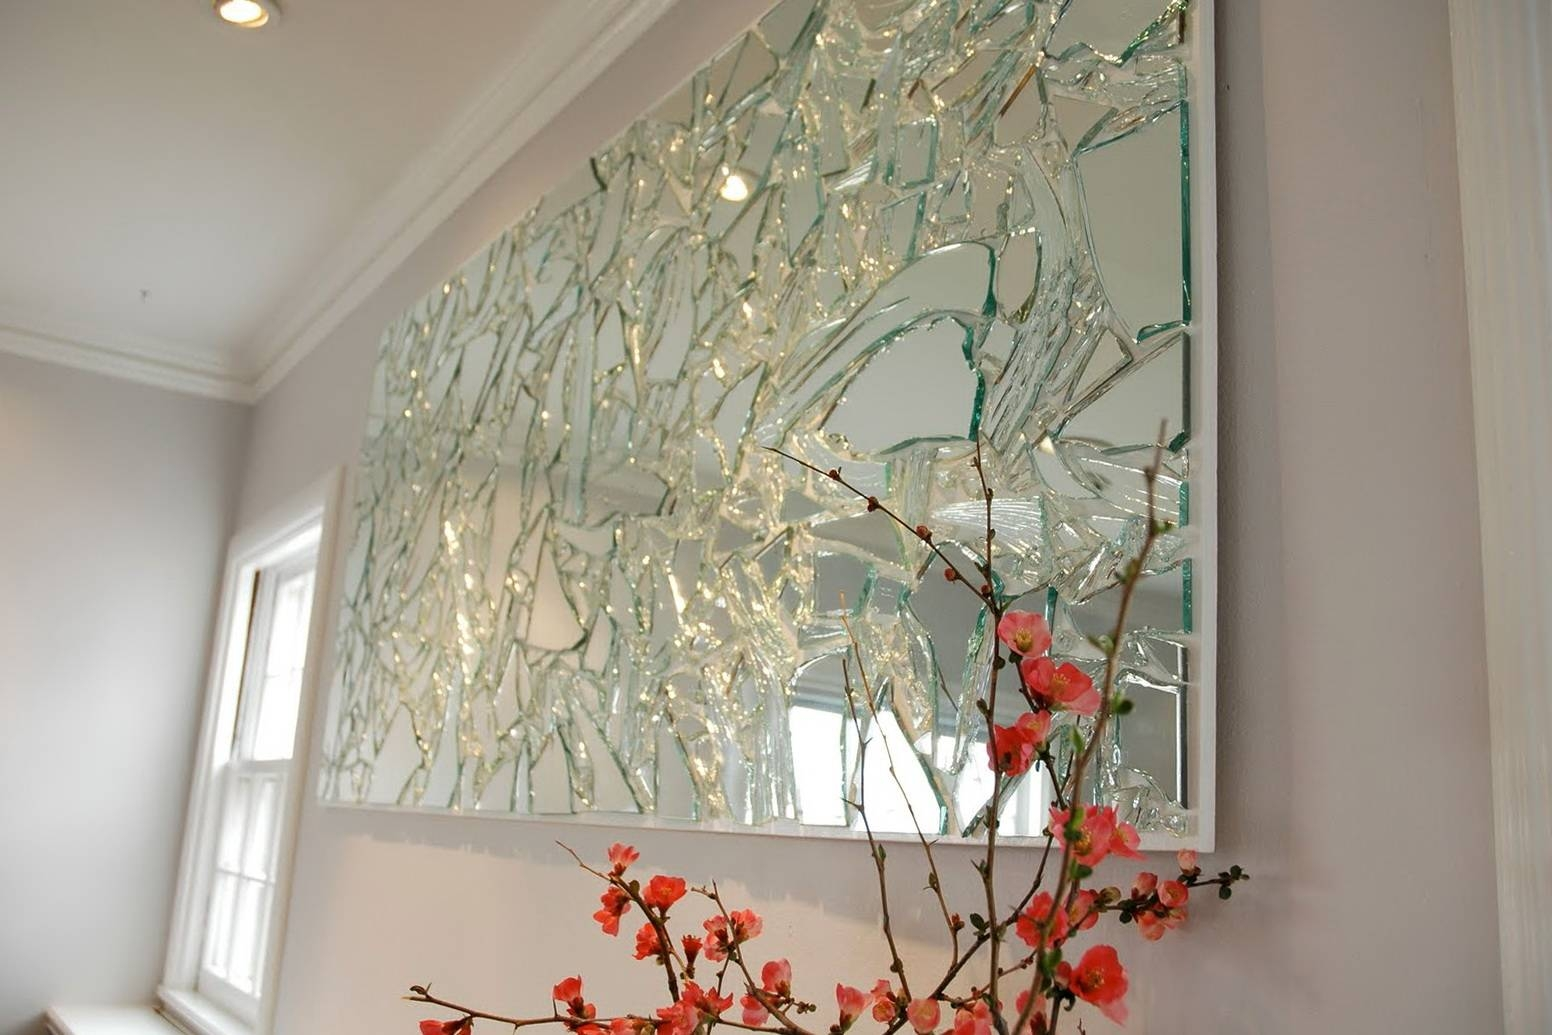 Mirror Wall Art Diy | Home Design Ideas Within Most Up To Date Diy Mirror Wall Art (View 9 of 20)